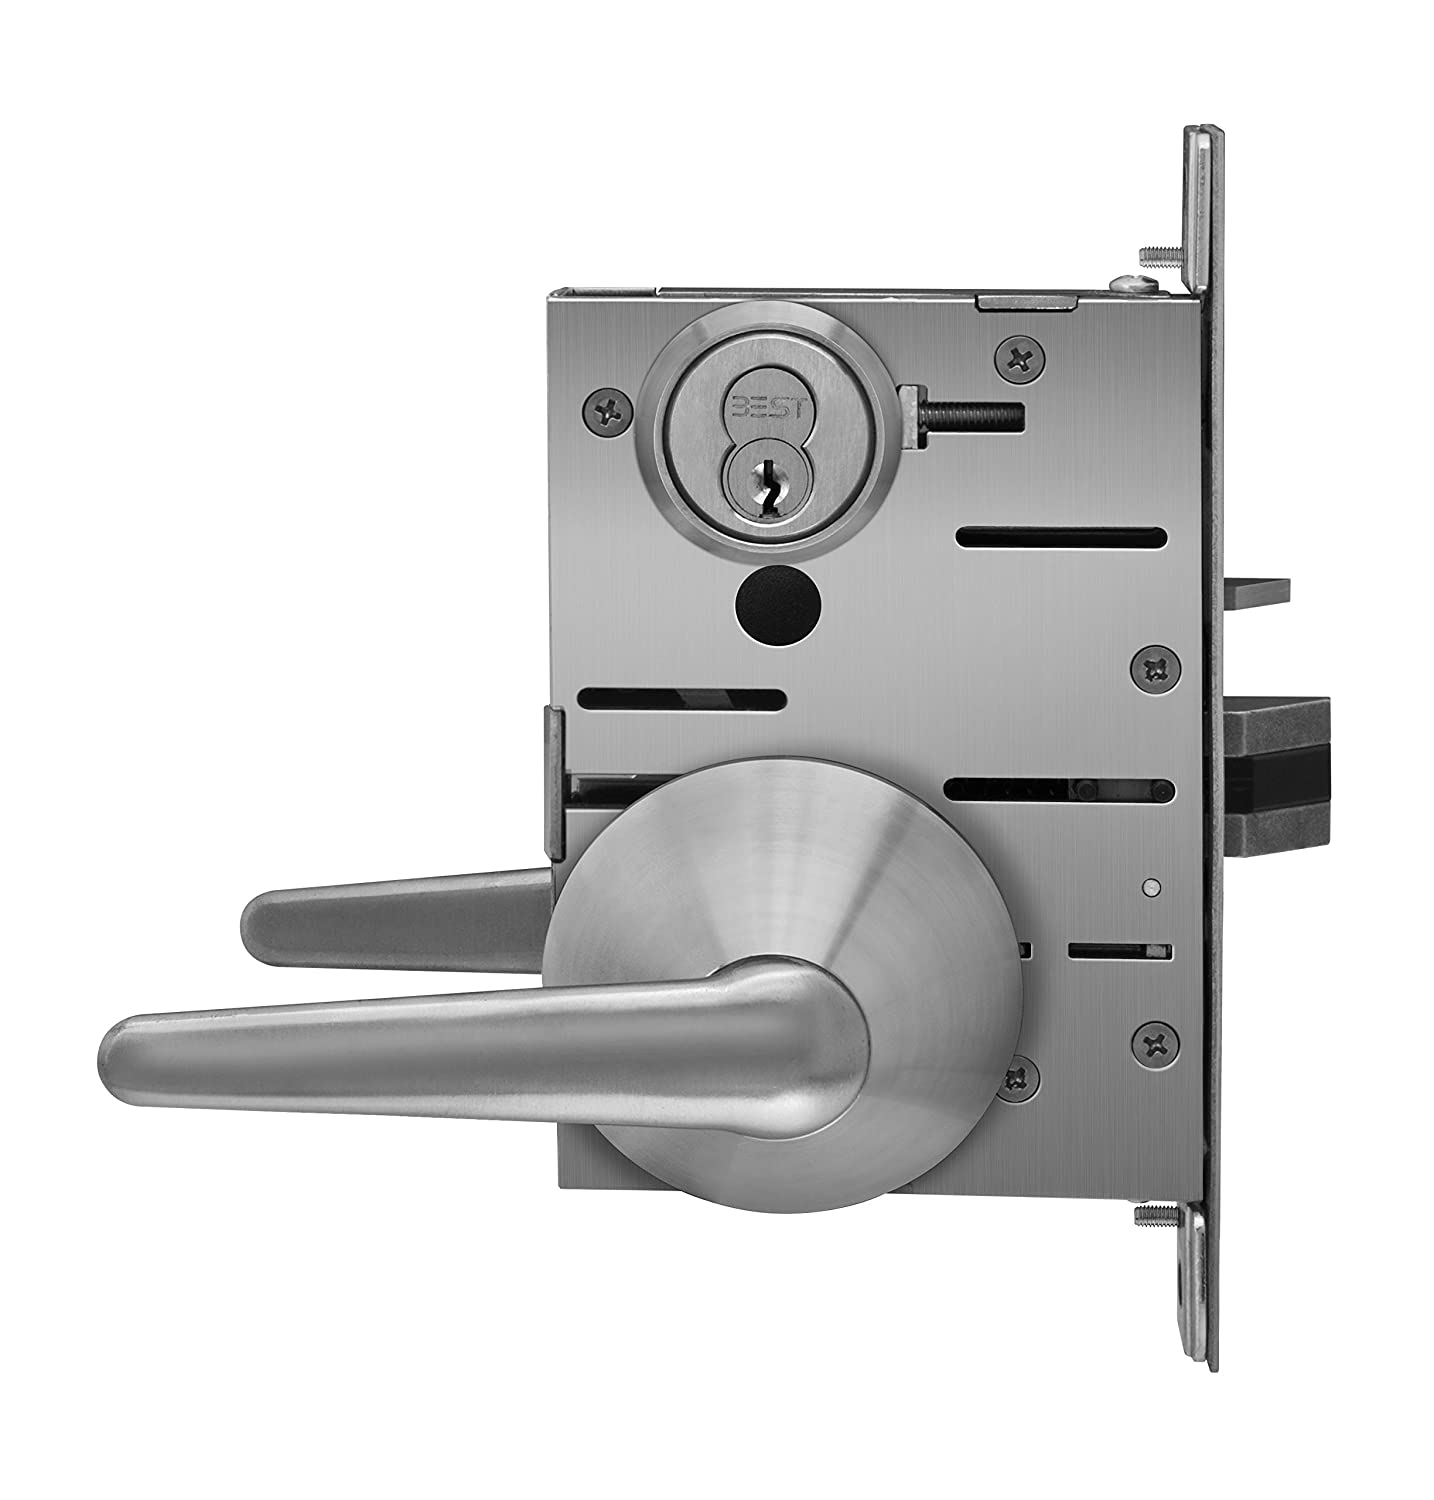 STANLEY SPSLMLD16F630LHR Patient Safety Storeroom Function Mortise Lever Satin Stainless Steel 2